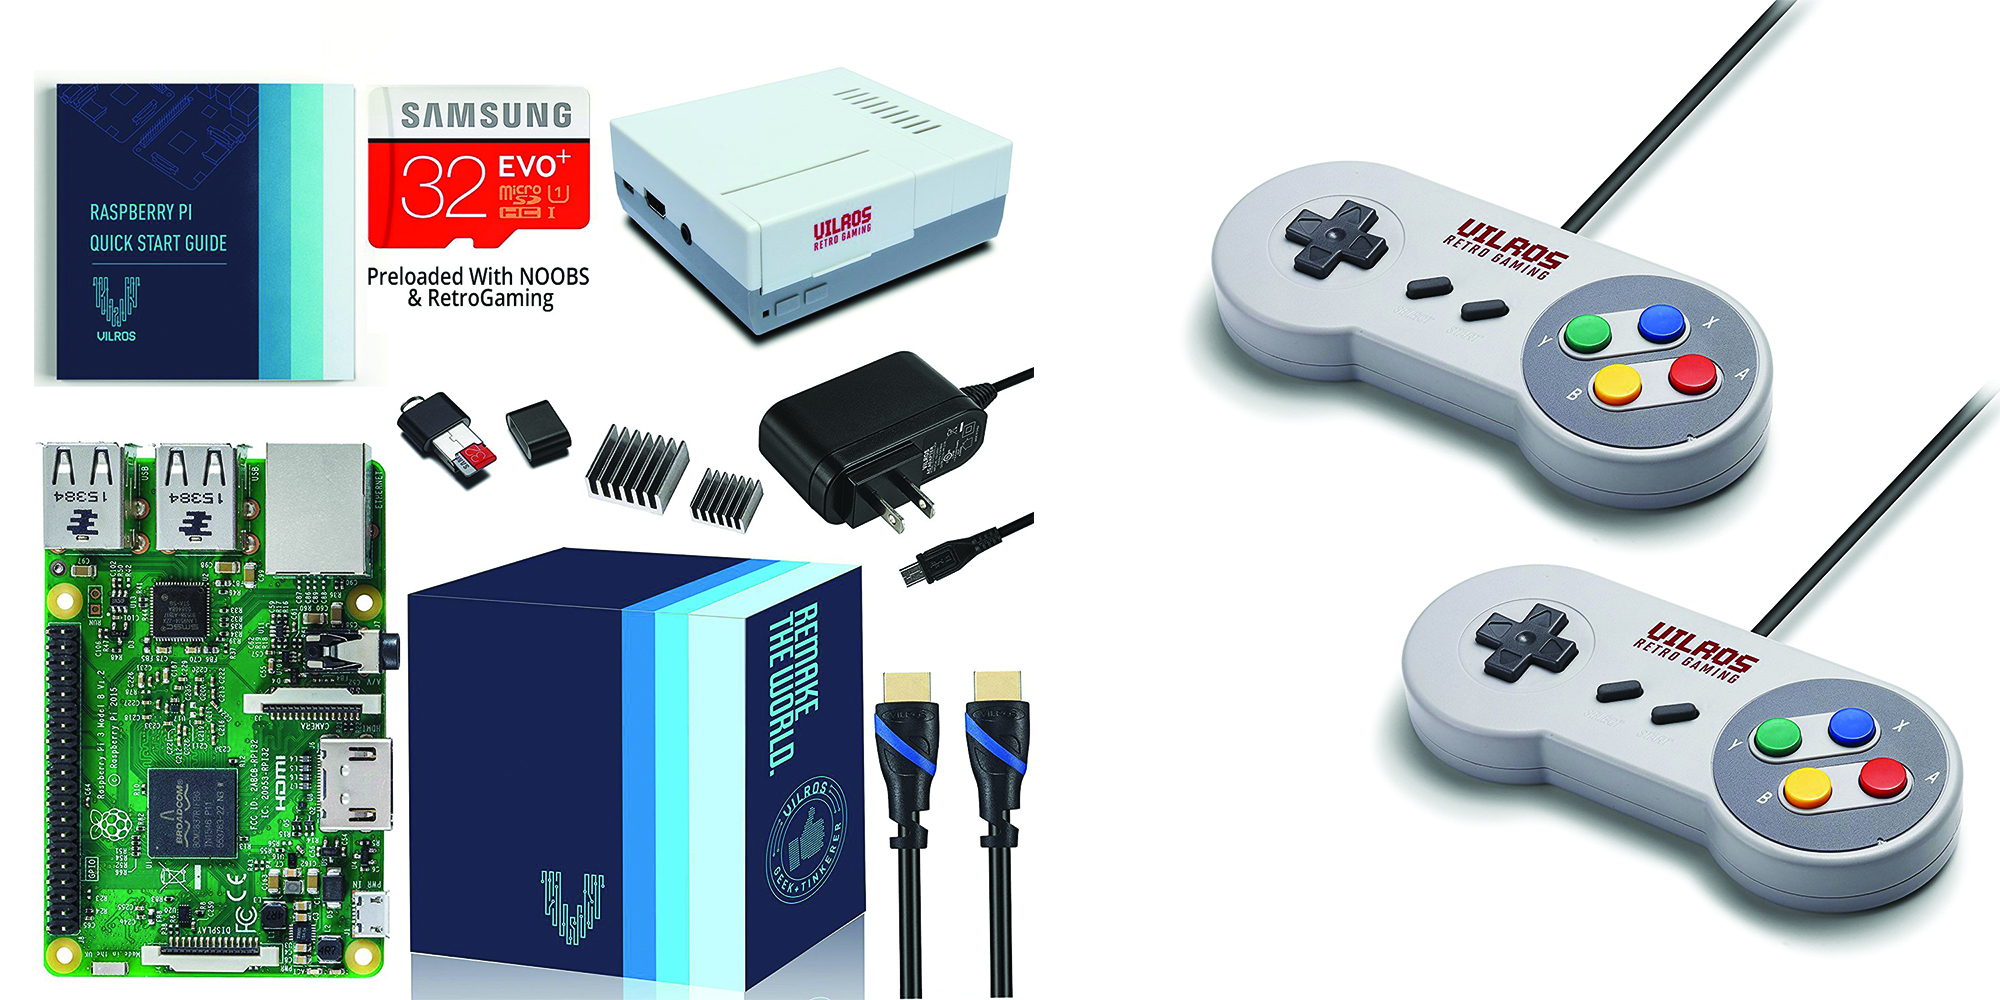 Amazon offers this Raspberry Pi 3 Gaming Kit at $66, add two SNES controllers for $3.50 more